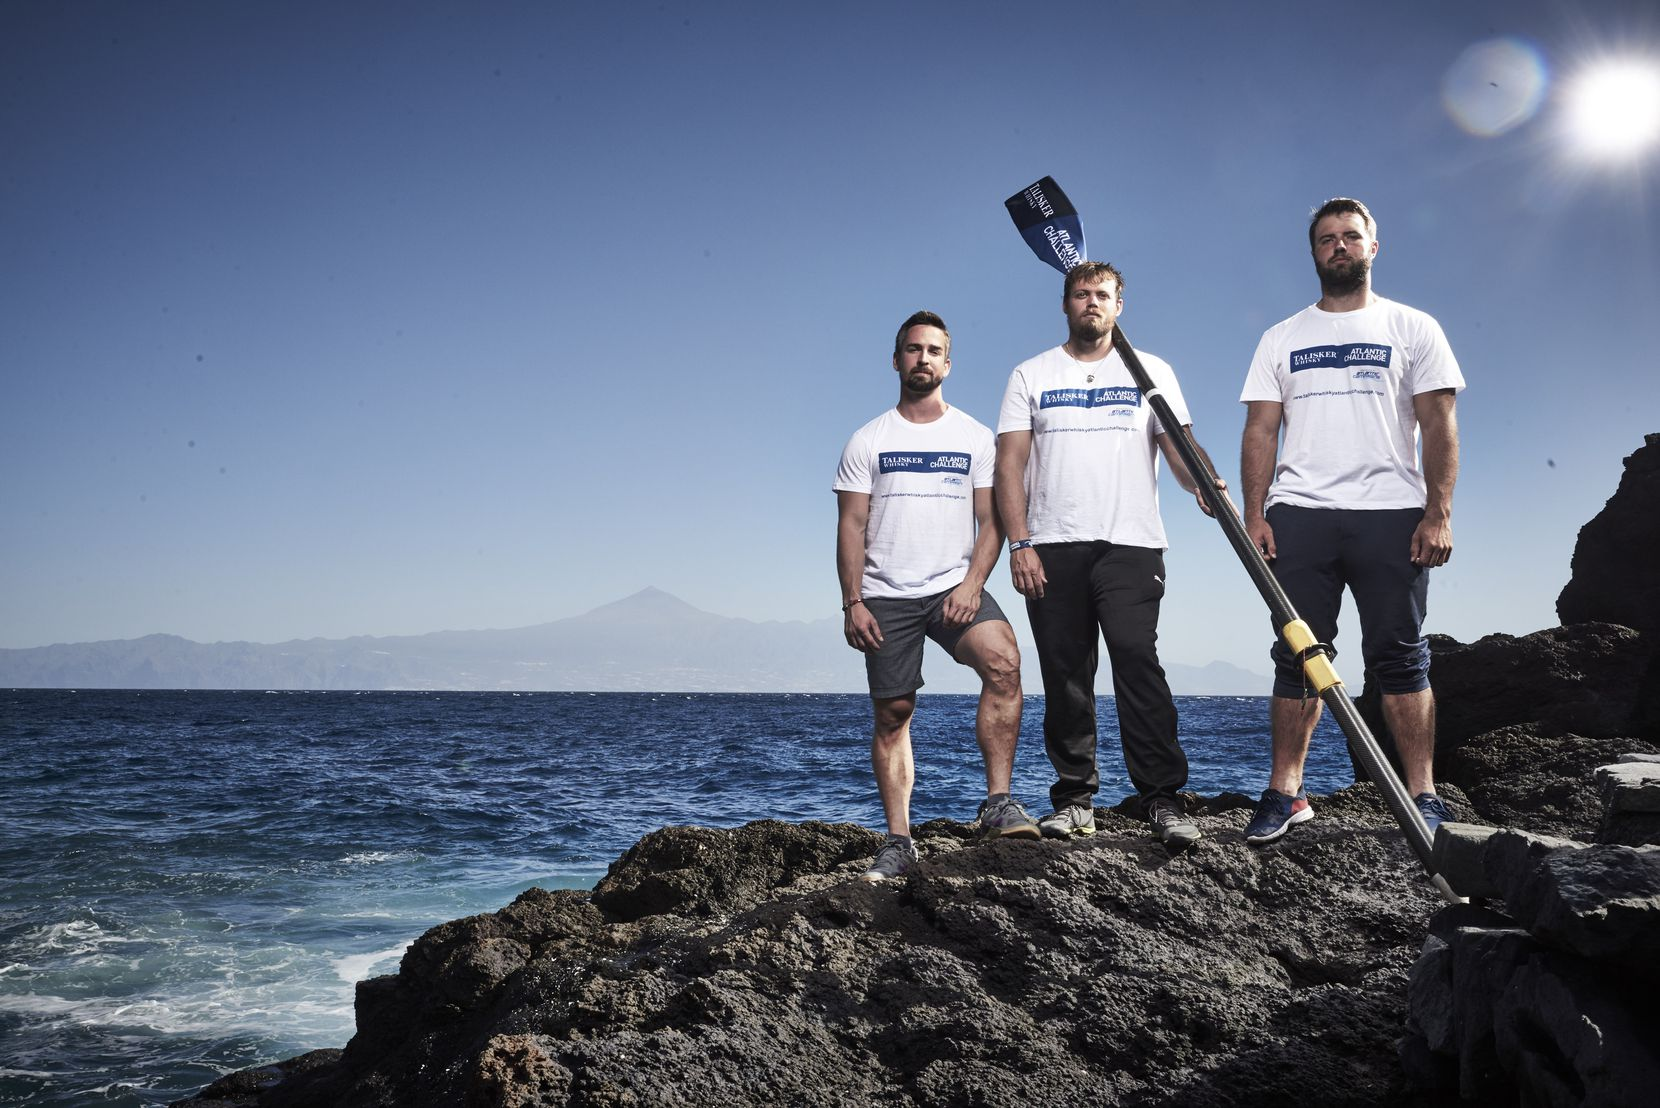 The American Oarsmen (from left) are David Alviar, Mike Matson and Brian Krauskopf, all from the Houston area. (Ben Duffy)